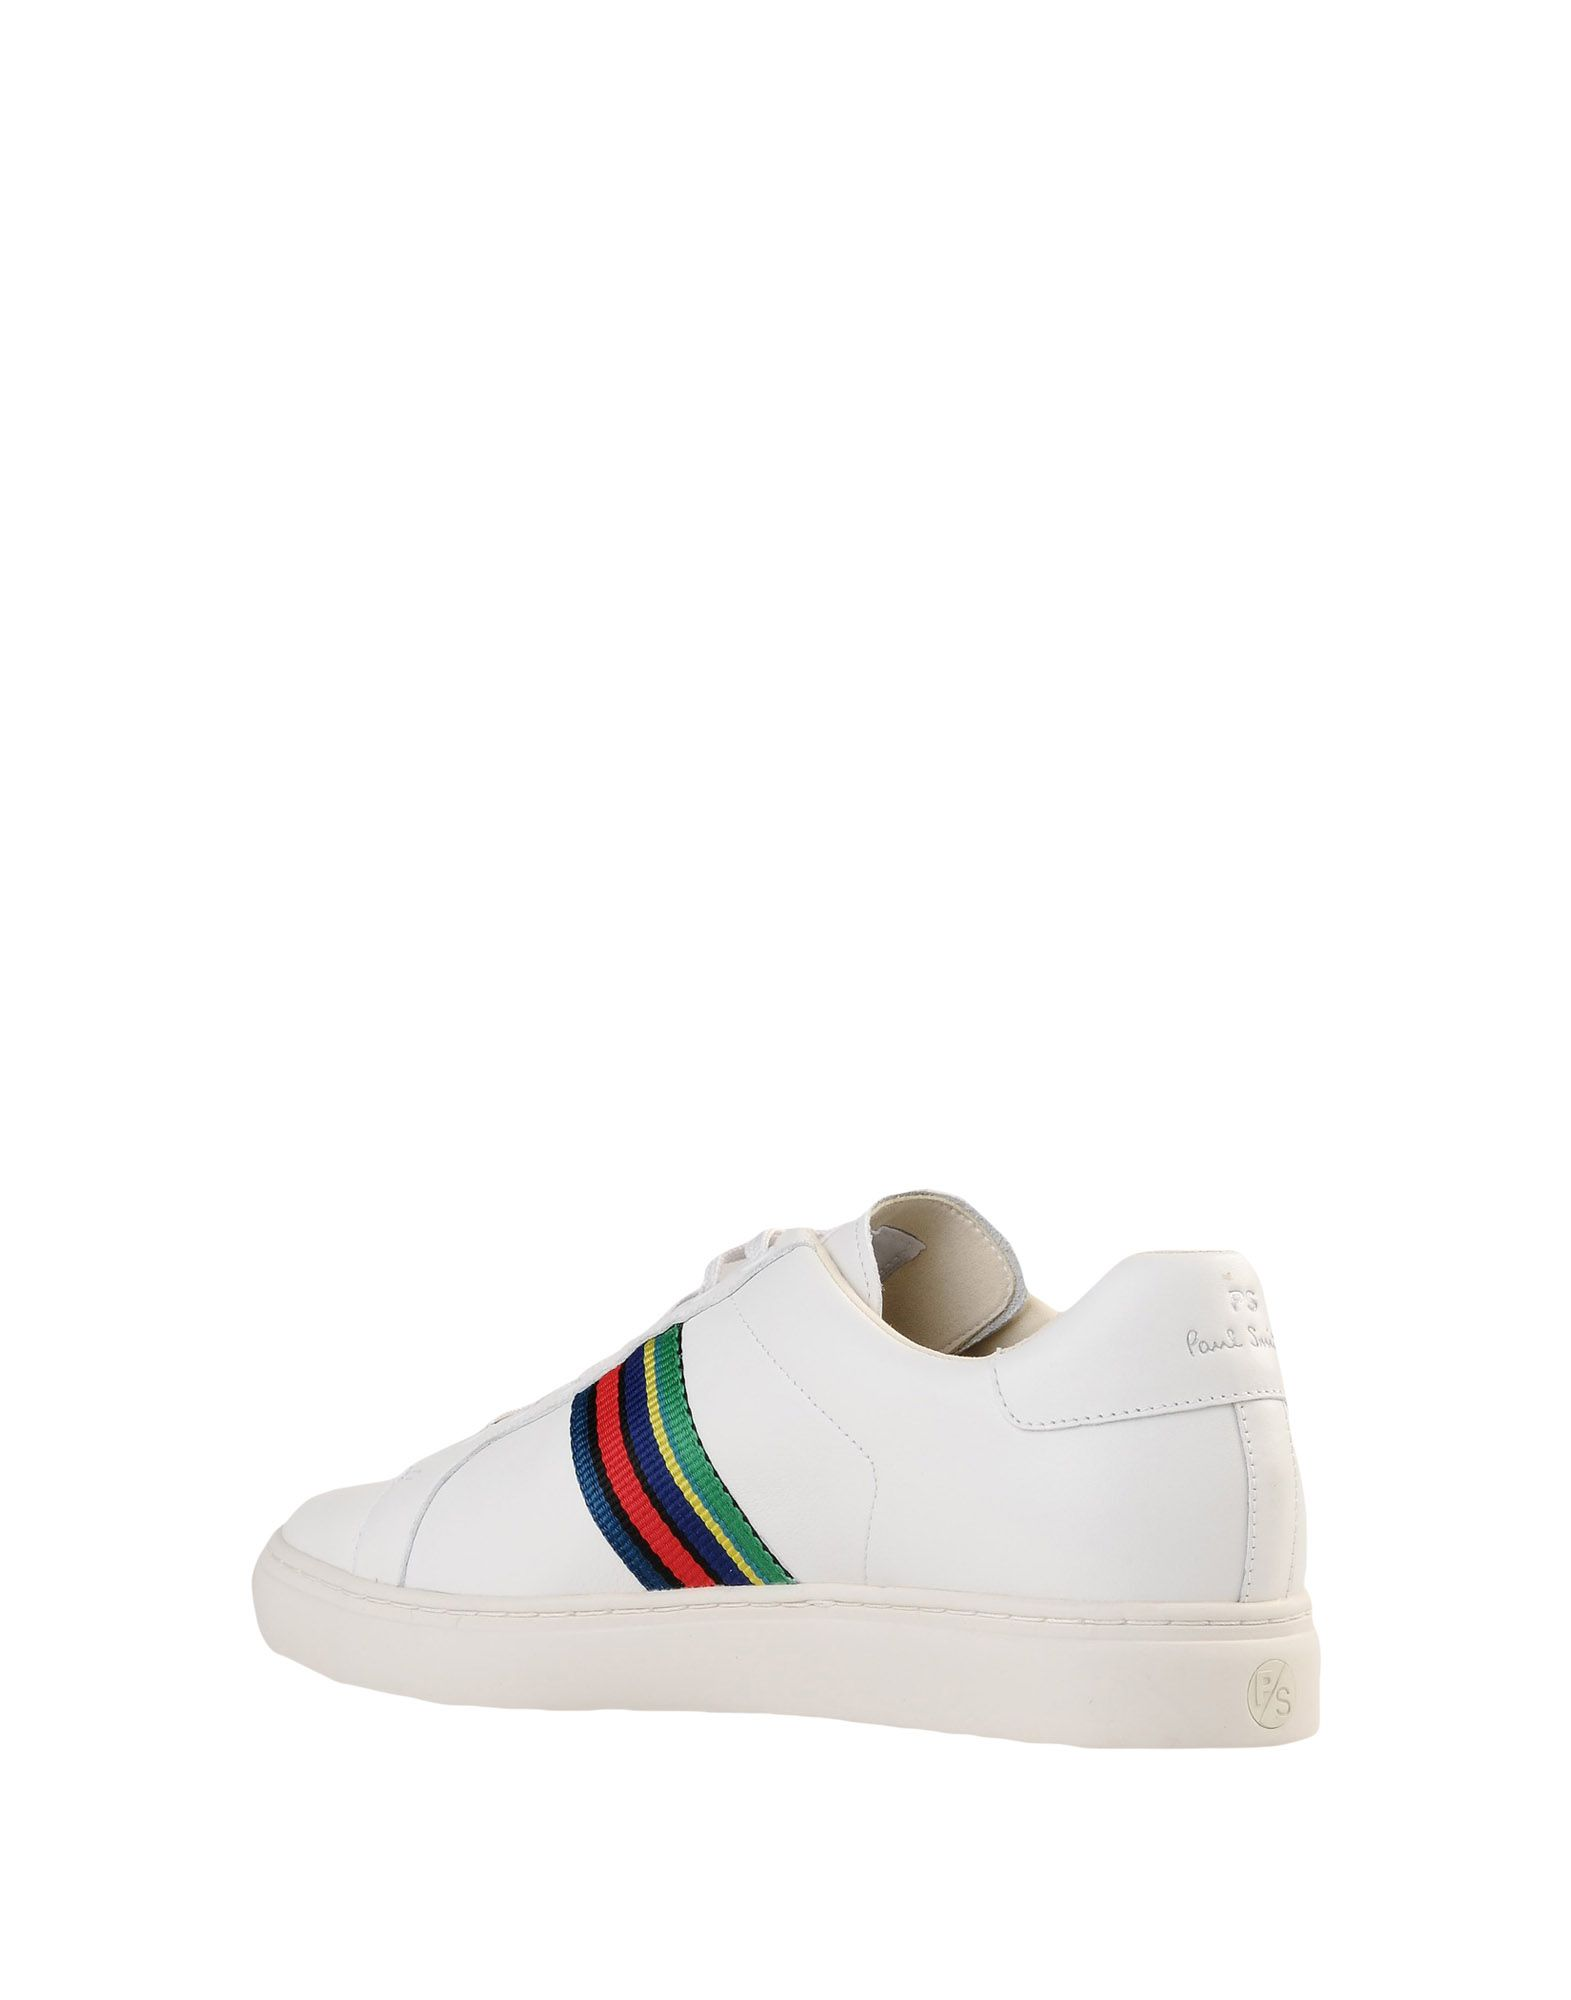 Ps By Paul Smith Sneakers - Men Ps By By By Paul Smith Sneakers online on  Australia - 11538606OT 6925cb